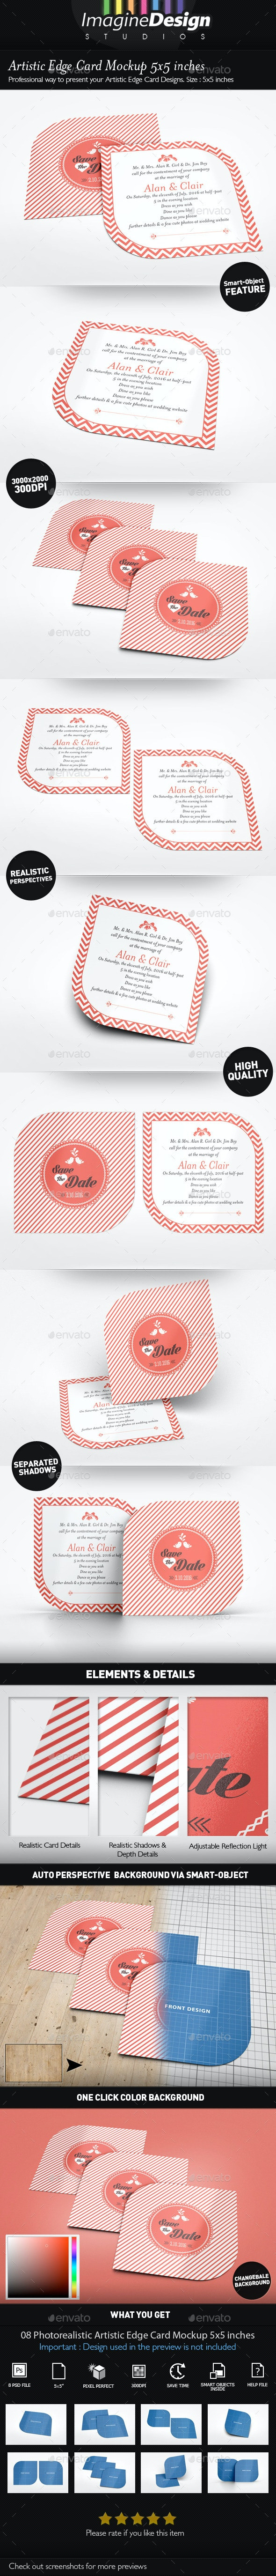 Artistic Edge Card Mockup 5x5 inches - Miscellaneous Print